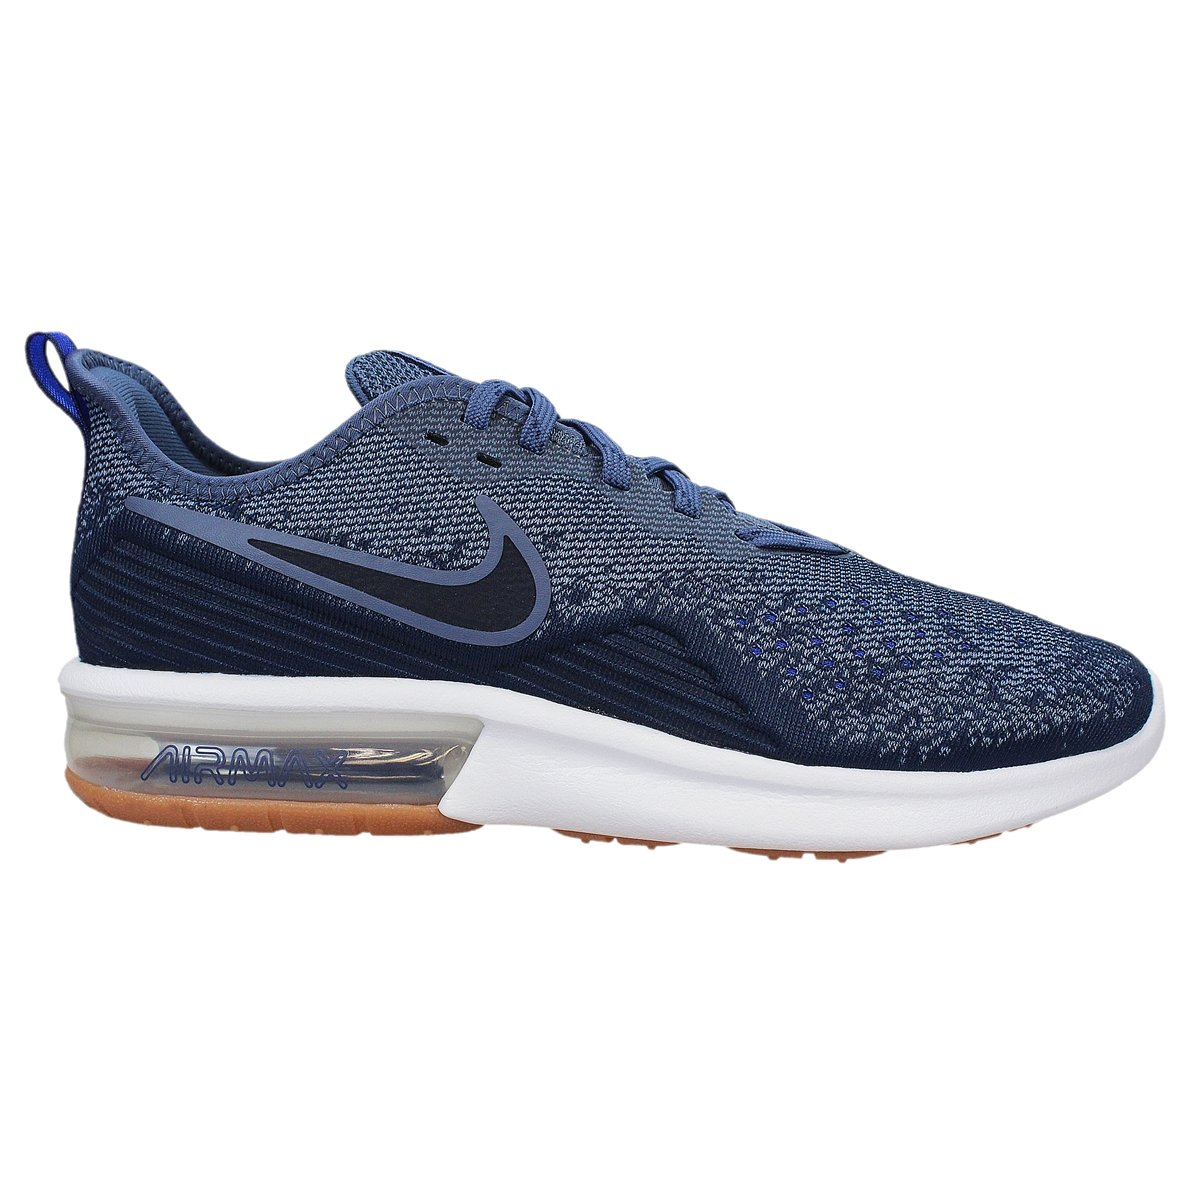 e339b45d986 TÊNIS NIKE AIR MAX SEQUENT 4